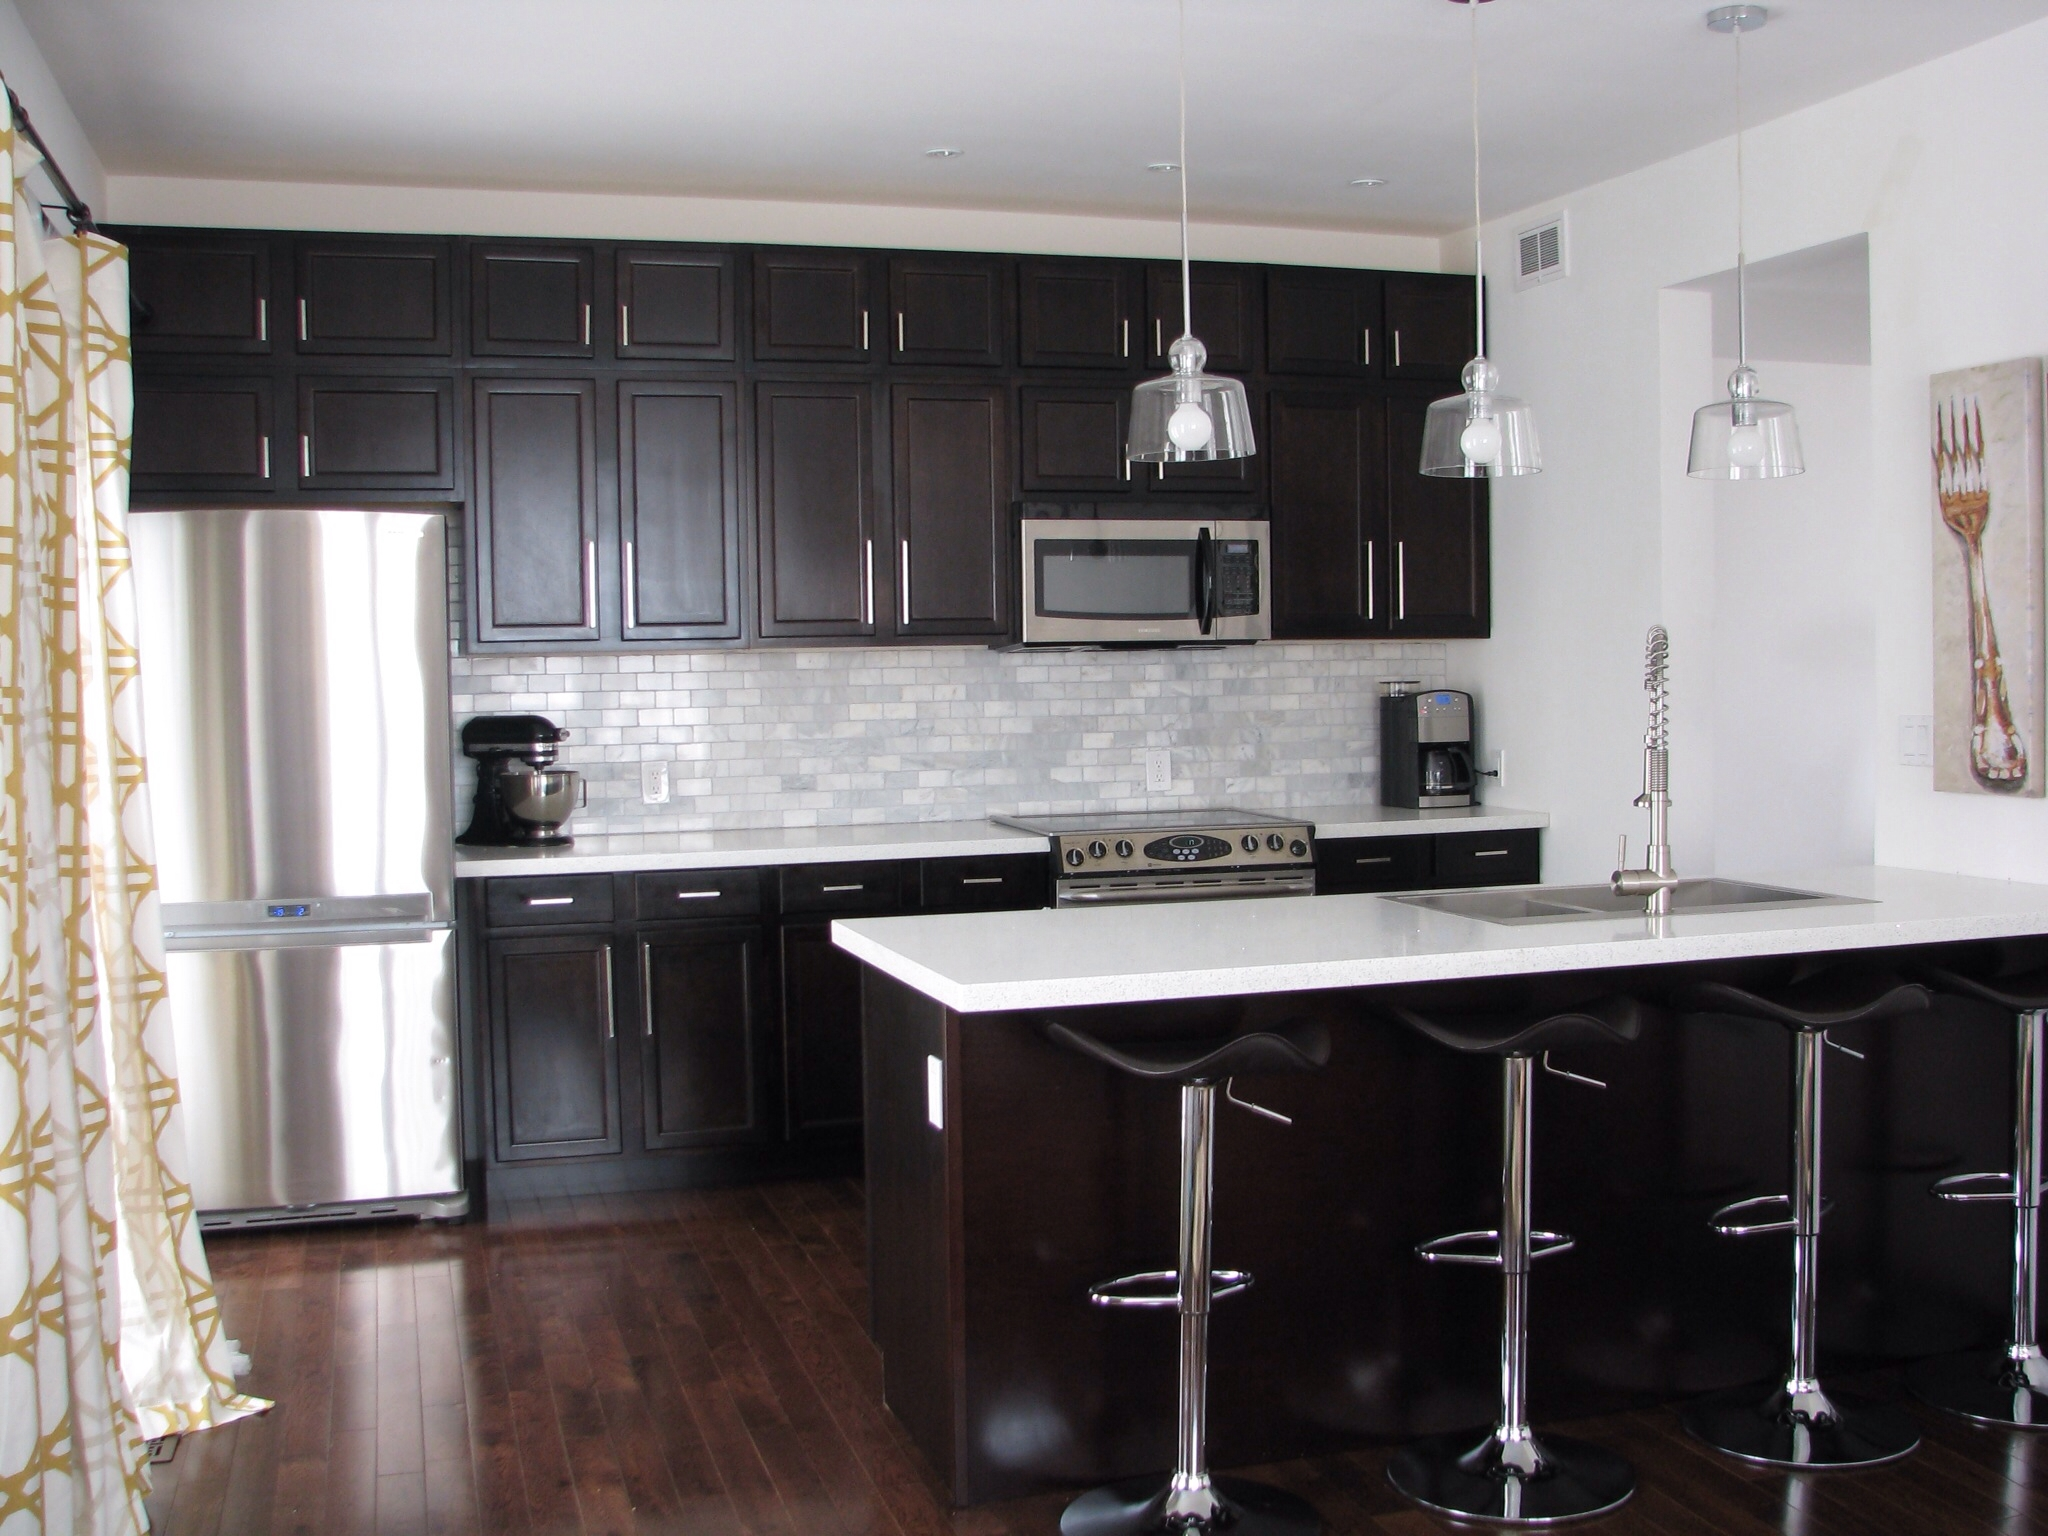 Permalink to White Kitchen Cabinets With Dark Quartz Countertops